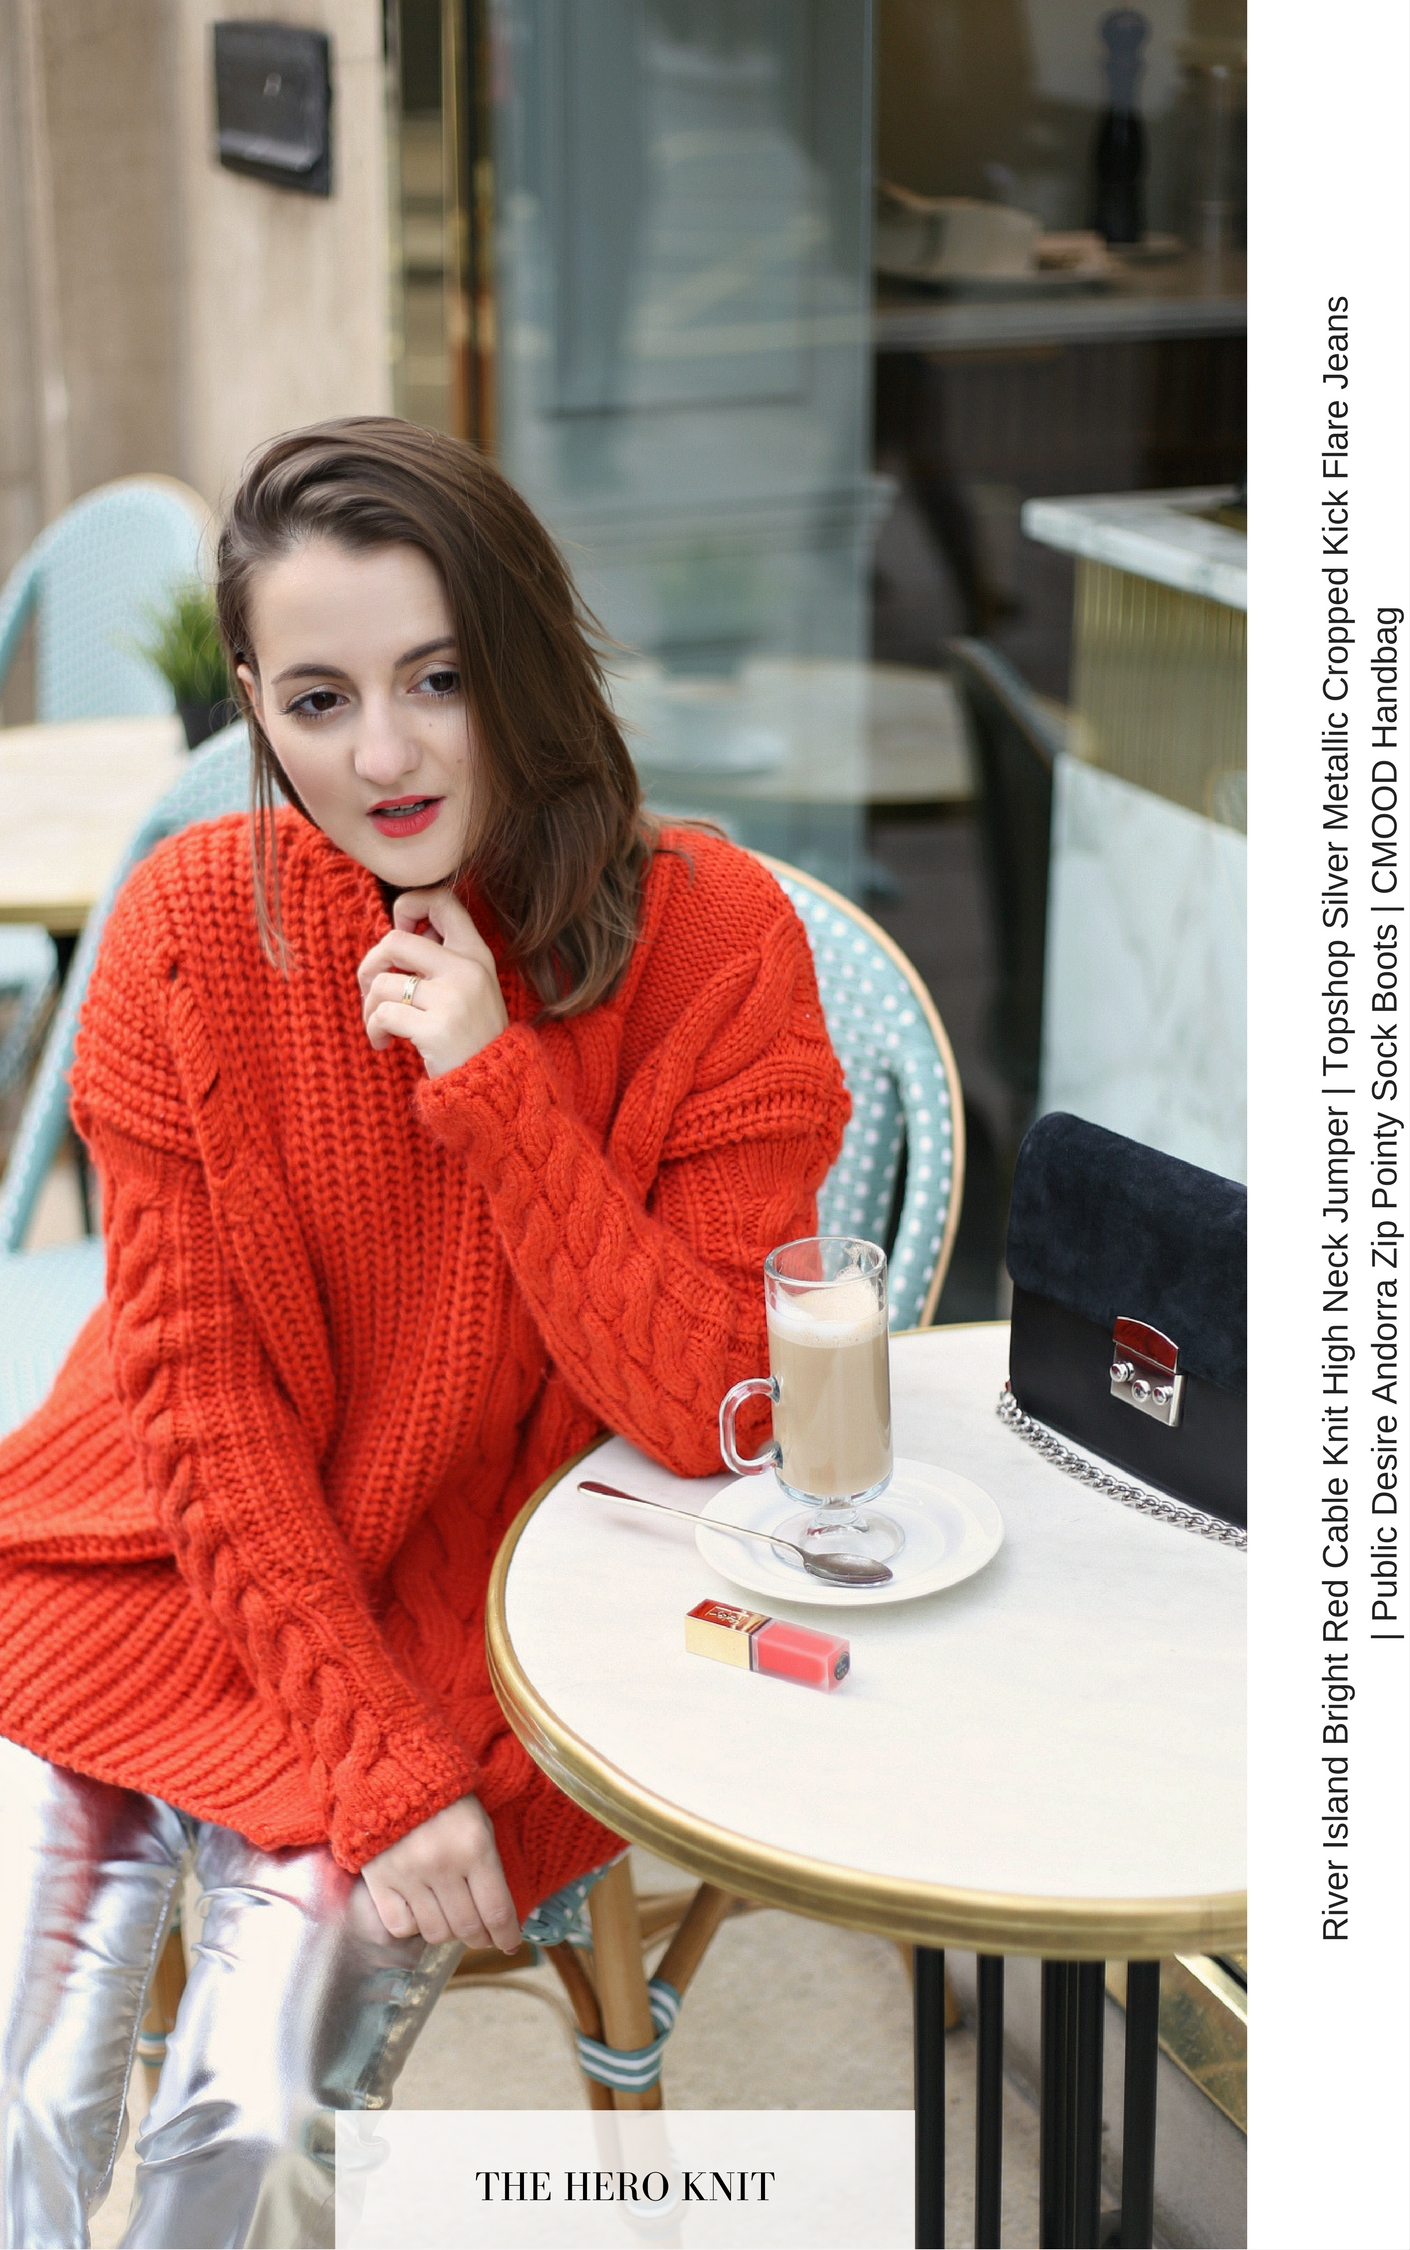 The hero knit jumper - Launeden